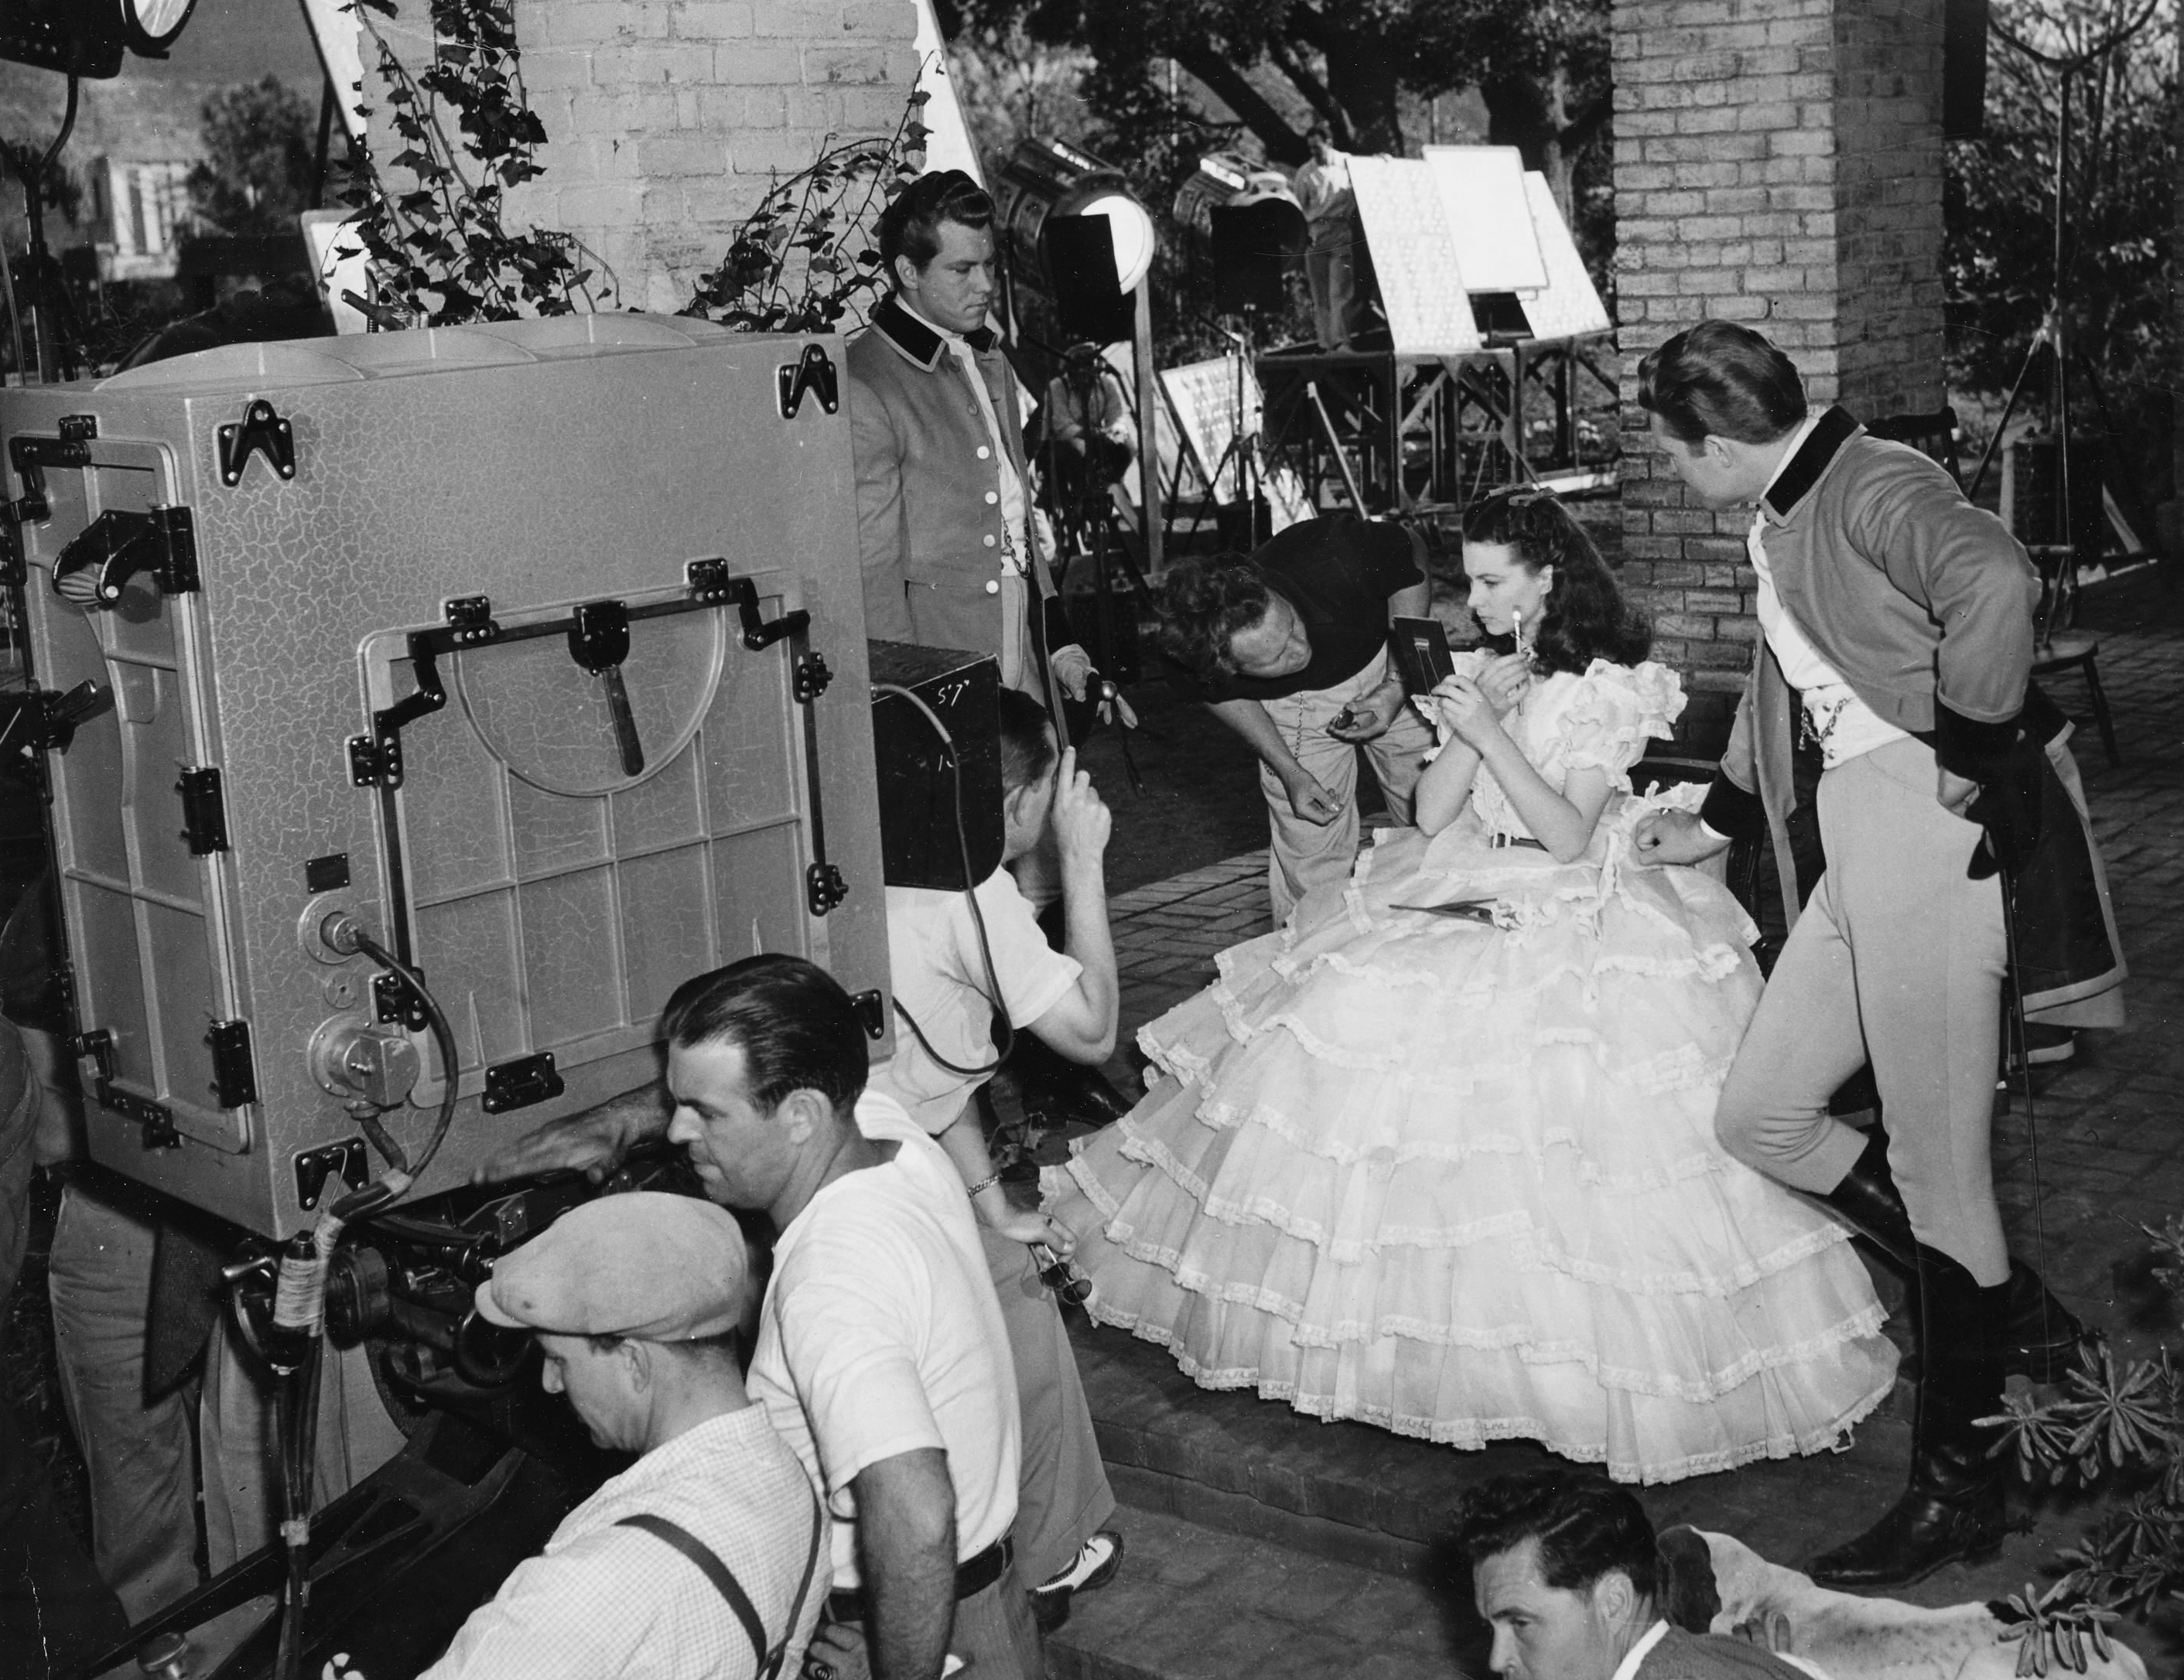 Vivien Leigh on the set of Gone with the Wind in 1939.